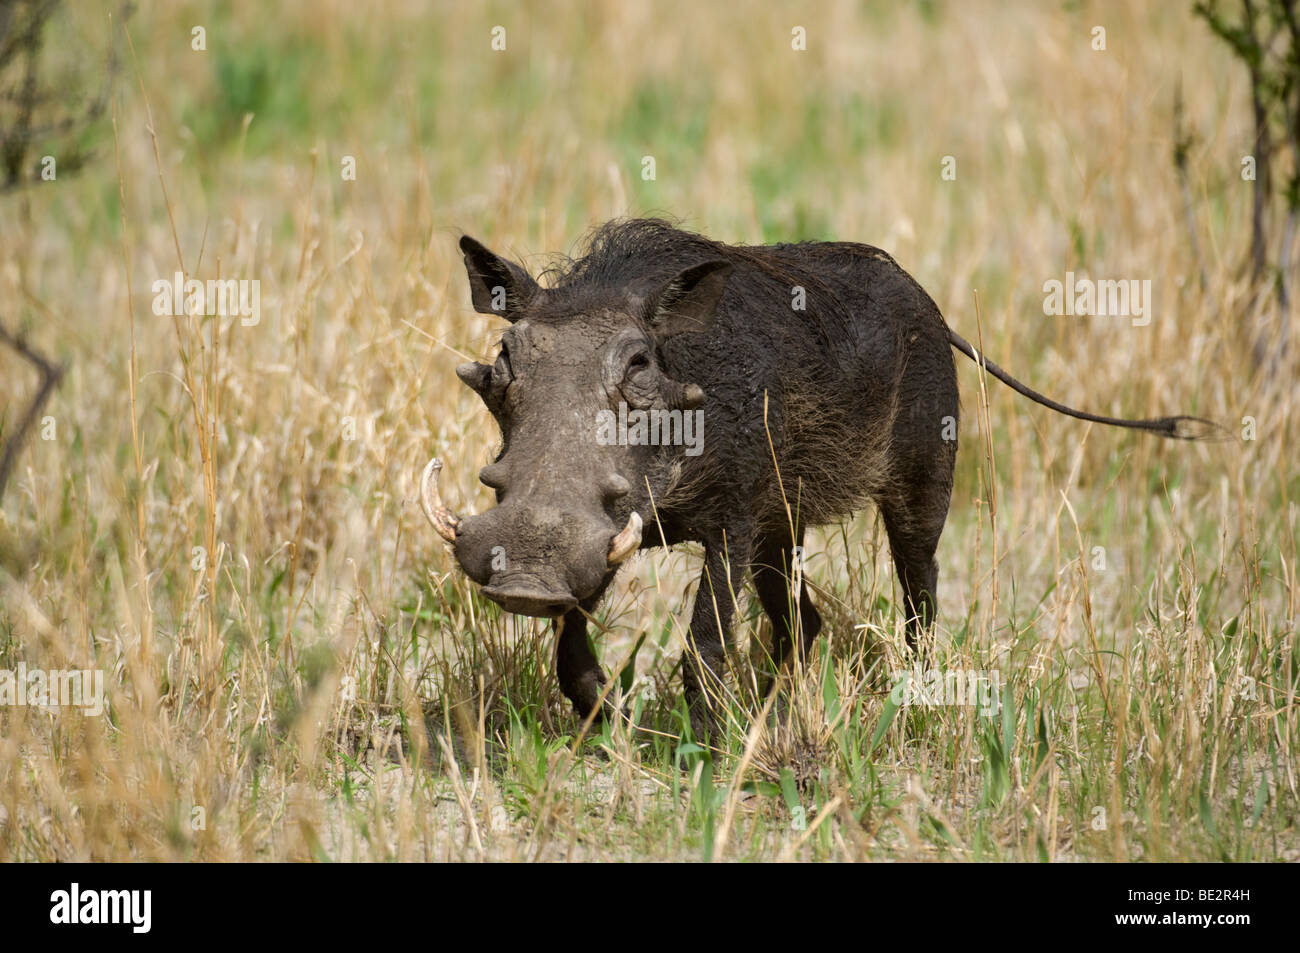 Warthog (Phacochoerus africanus), Central Kalahari, Botswana Stock Photo